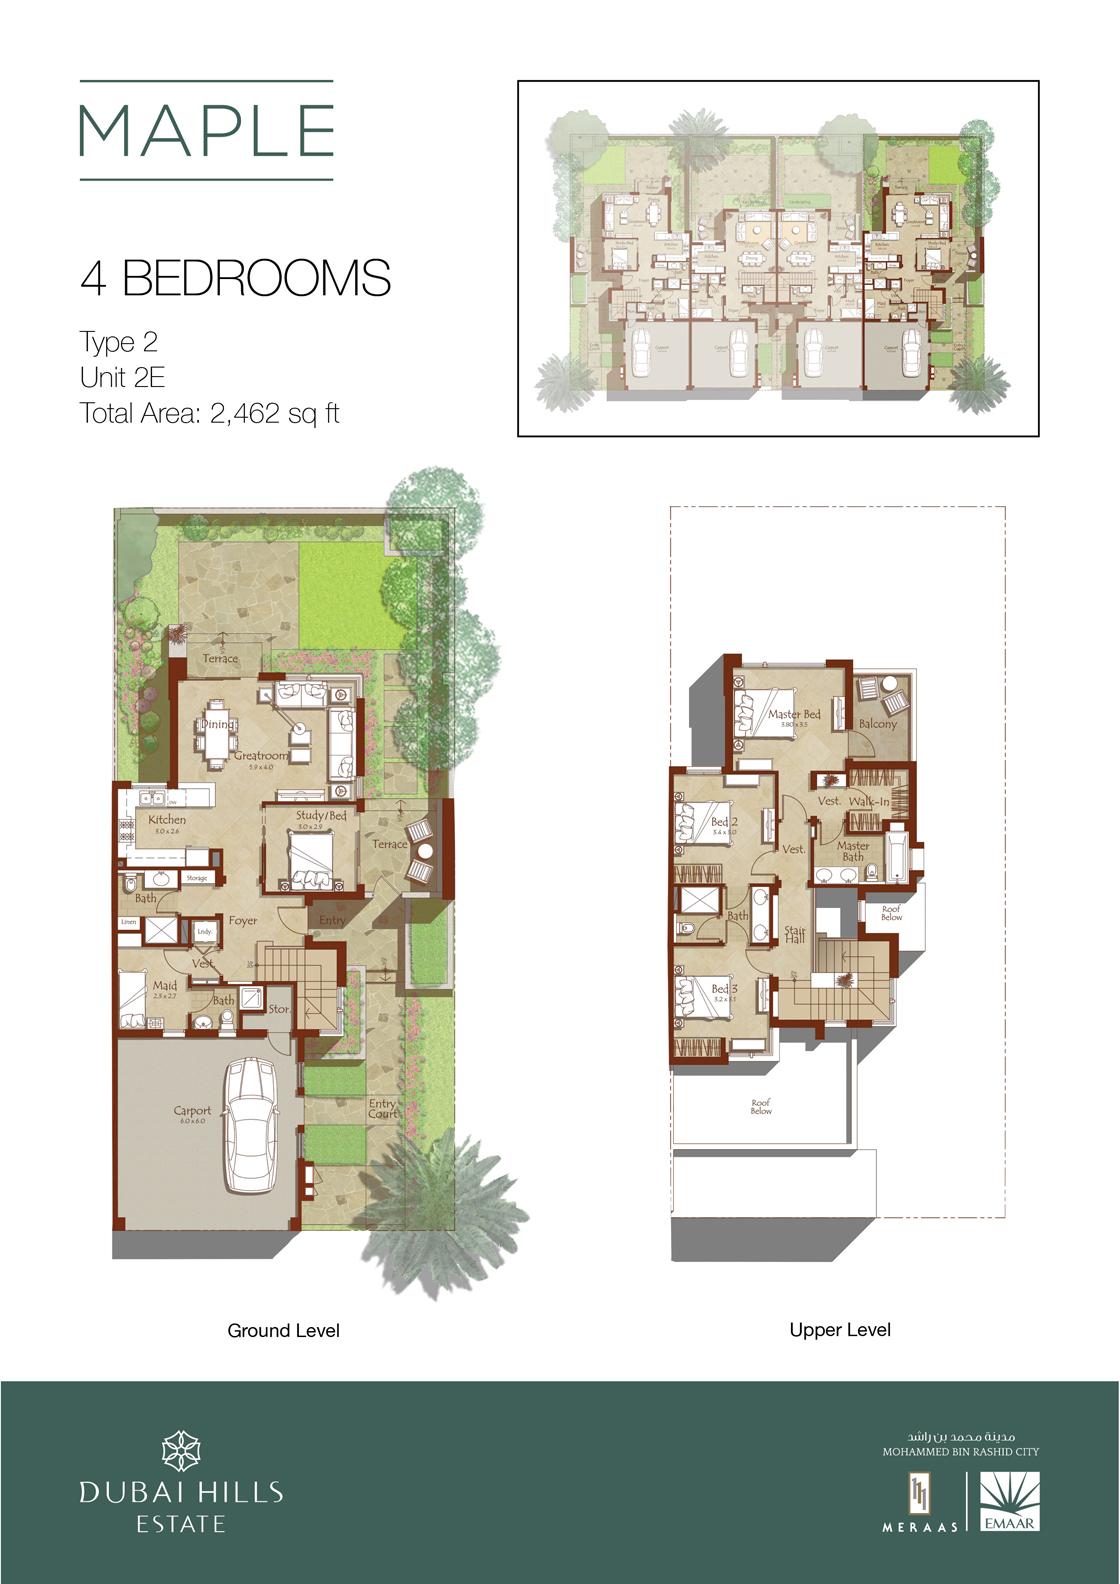 Maple-floorplans3-4 bedroom-1120px tcm130-77820